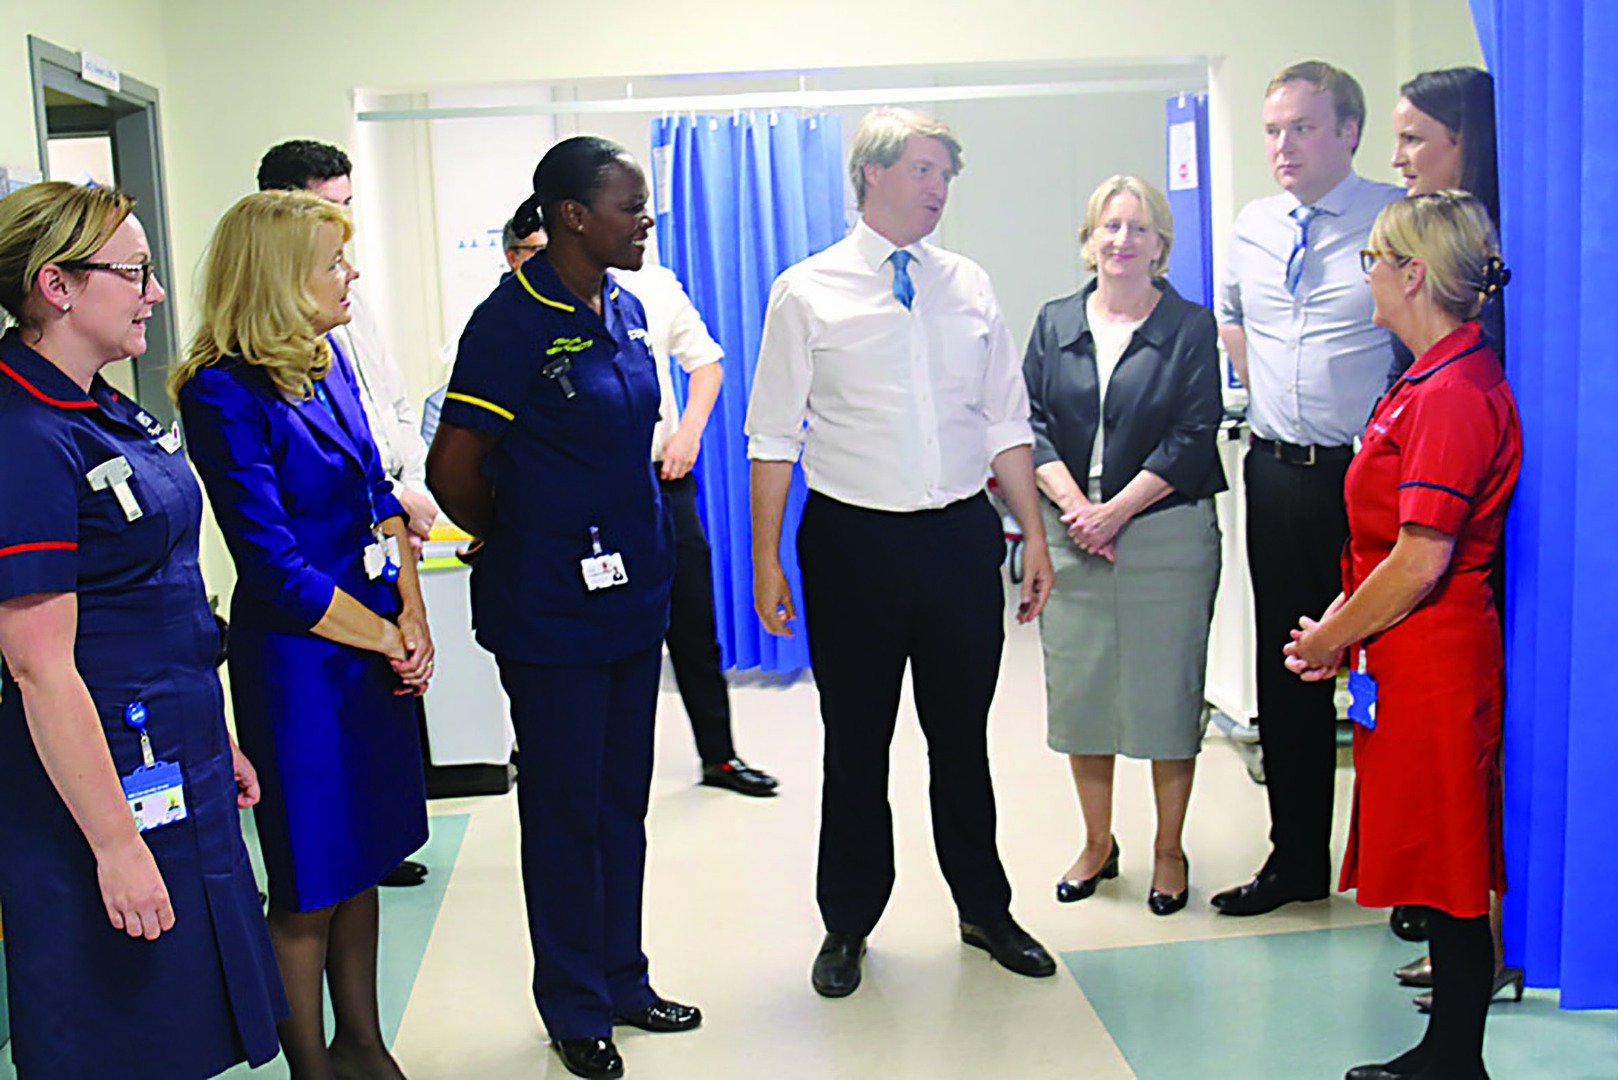 Health Minister visits Stepping Hill